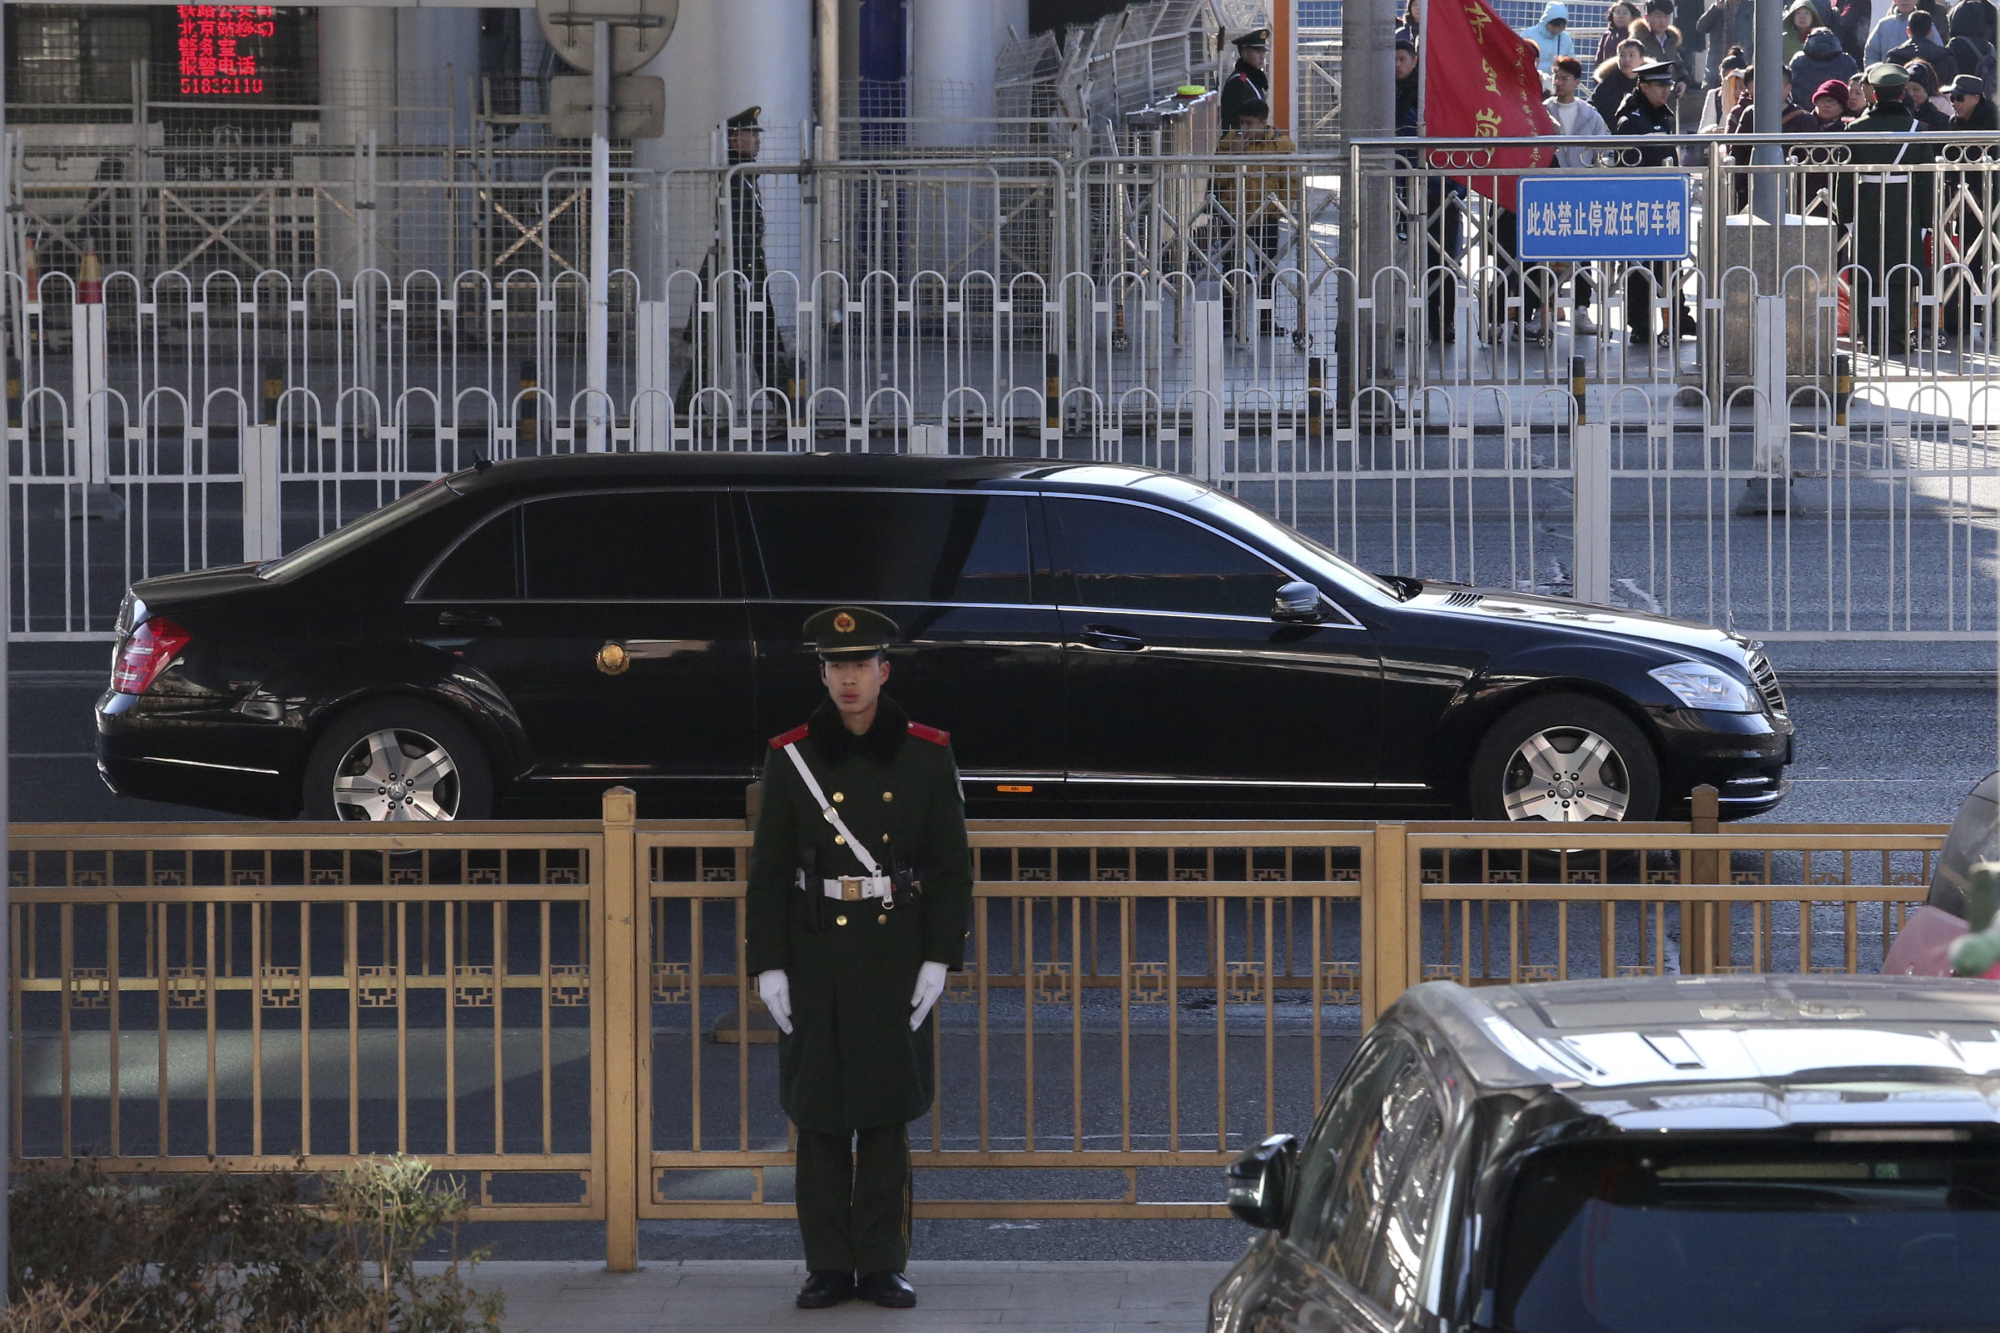 A limousine believed to be carrying North Korean leader Kim Jong Un leaves a train station with a convoy in Beijing on Tuesday. | AP